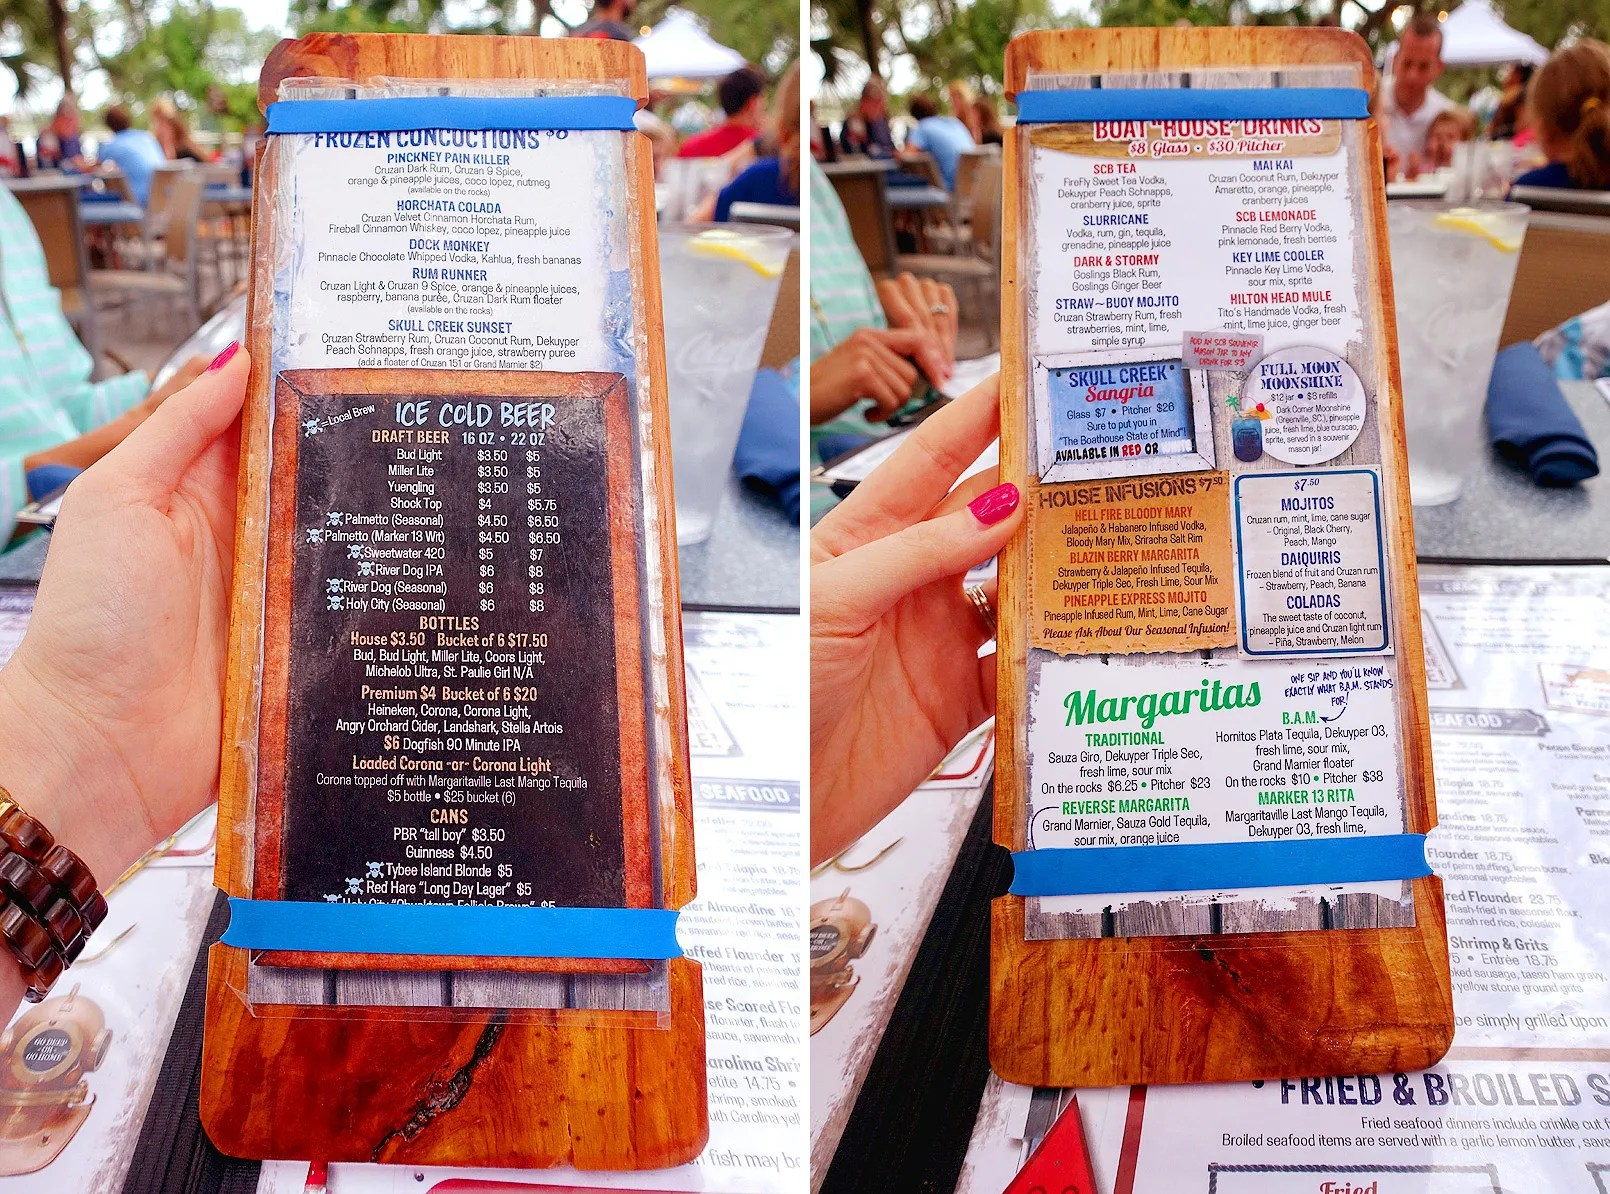 Skull-Creek-Boathouse-Restaurant-Bar-Menu